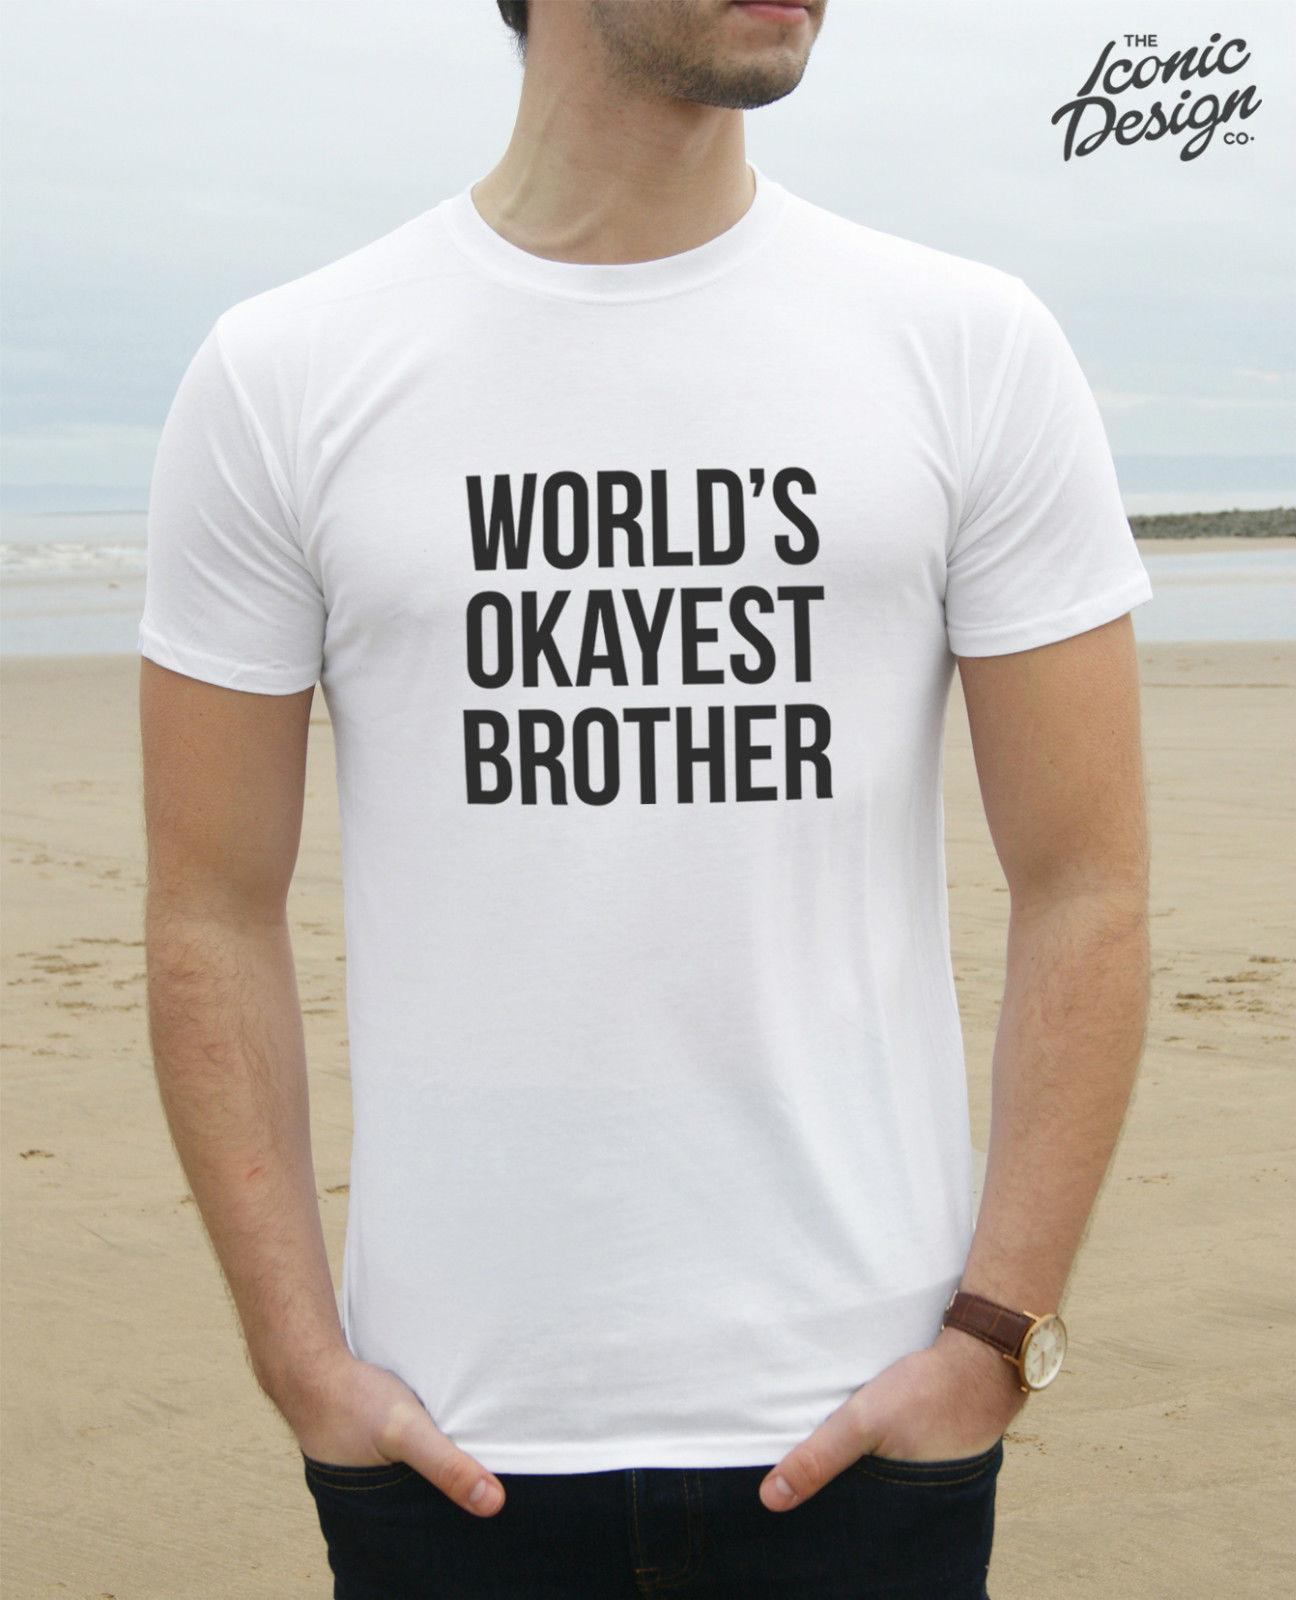 9179837a35 World'S Okayest Brother T Shirt Top Birthday Fashion Guy Christmas Funny  Gift Online Buy T Shirts Tna Shirts From Young_ten, $12.96| DHgate.Com